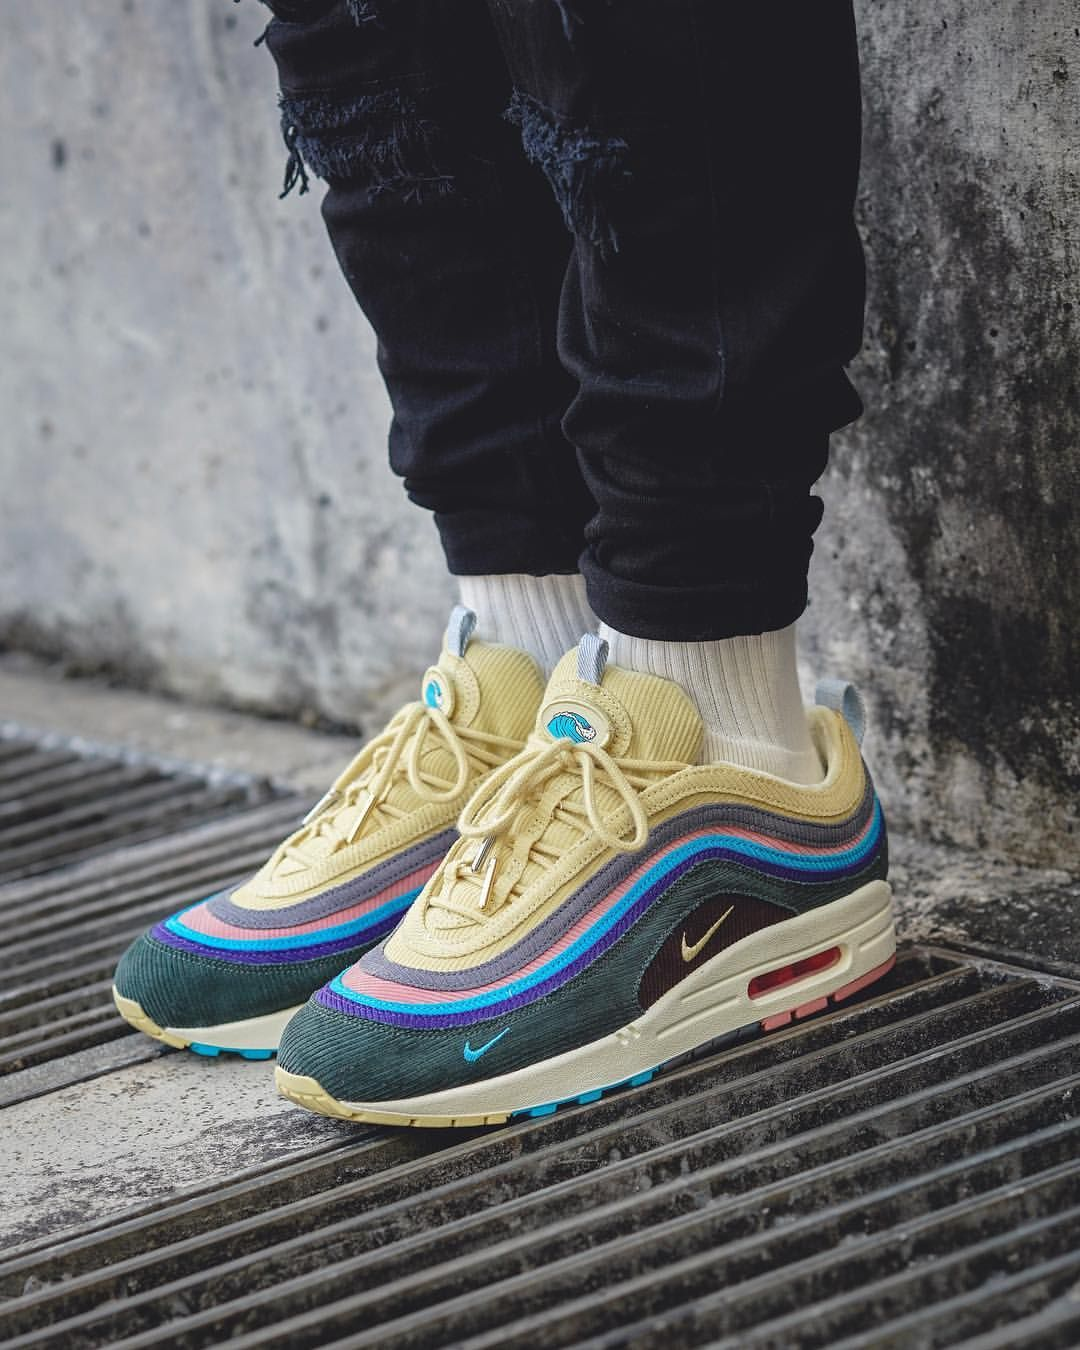 best website e3a82 42fbf Sean Wotherspoon x Nike Air Max 971